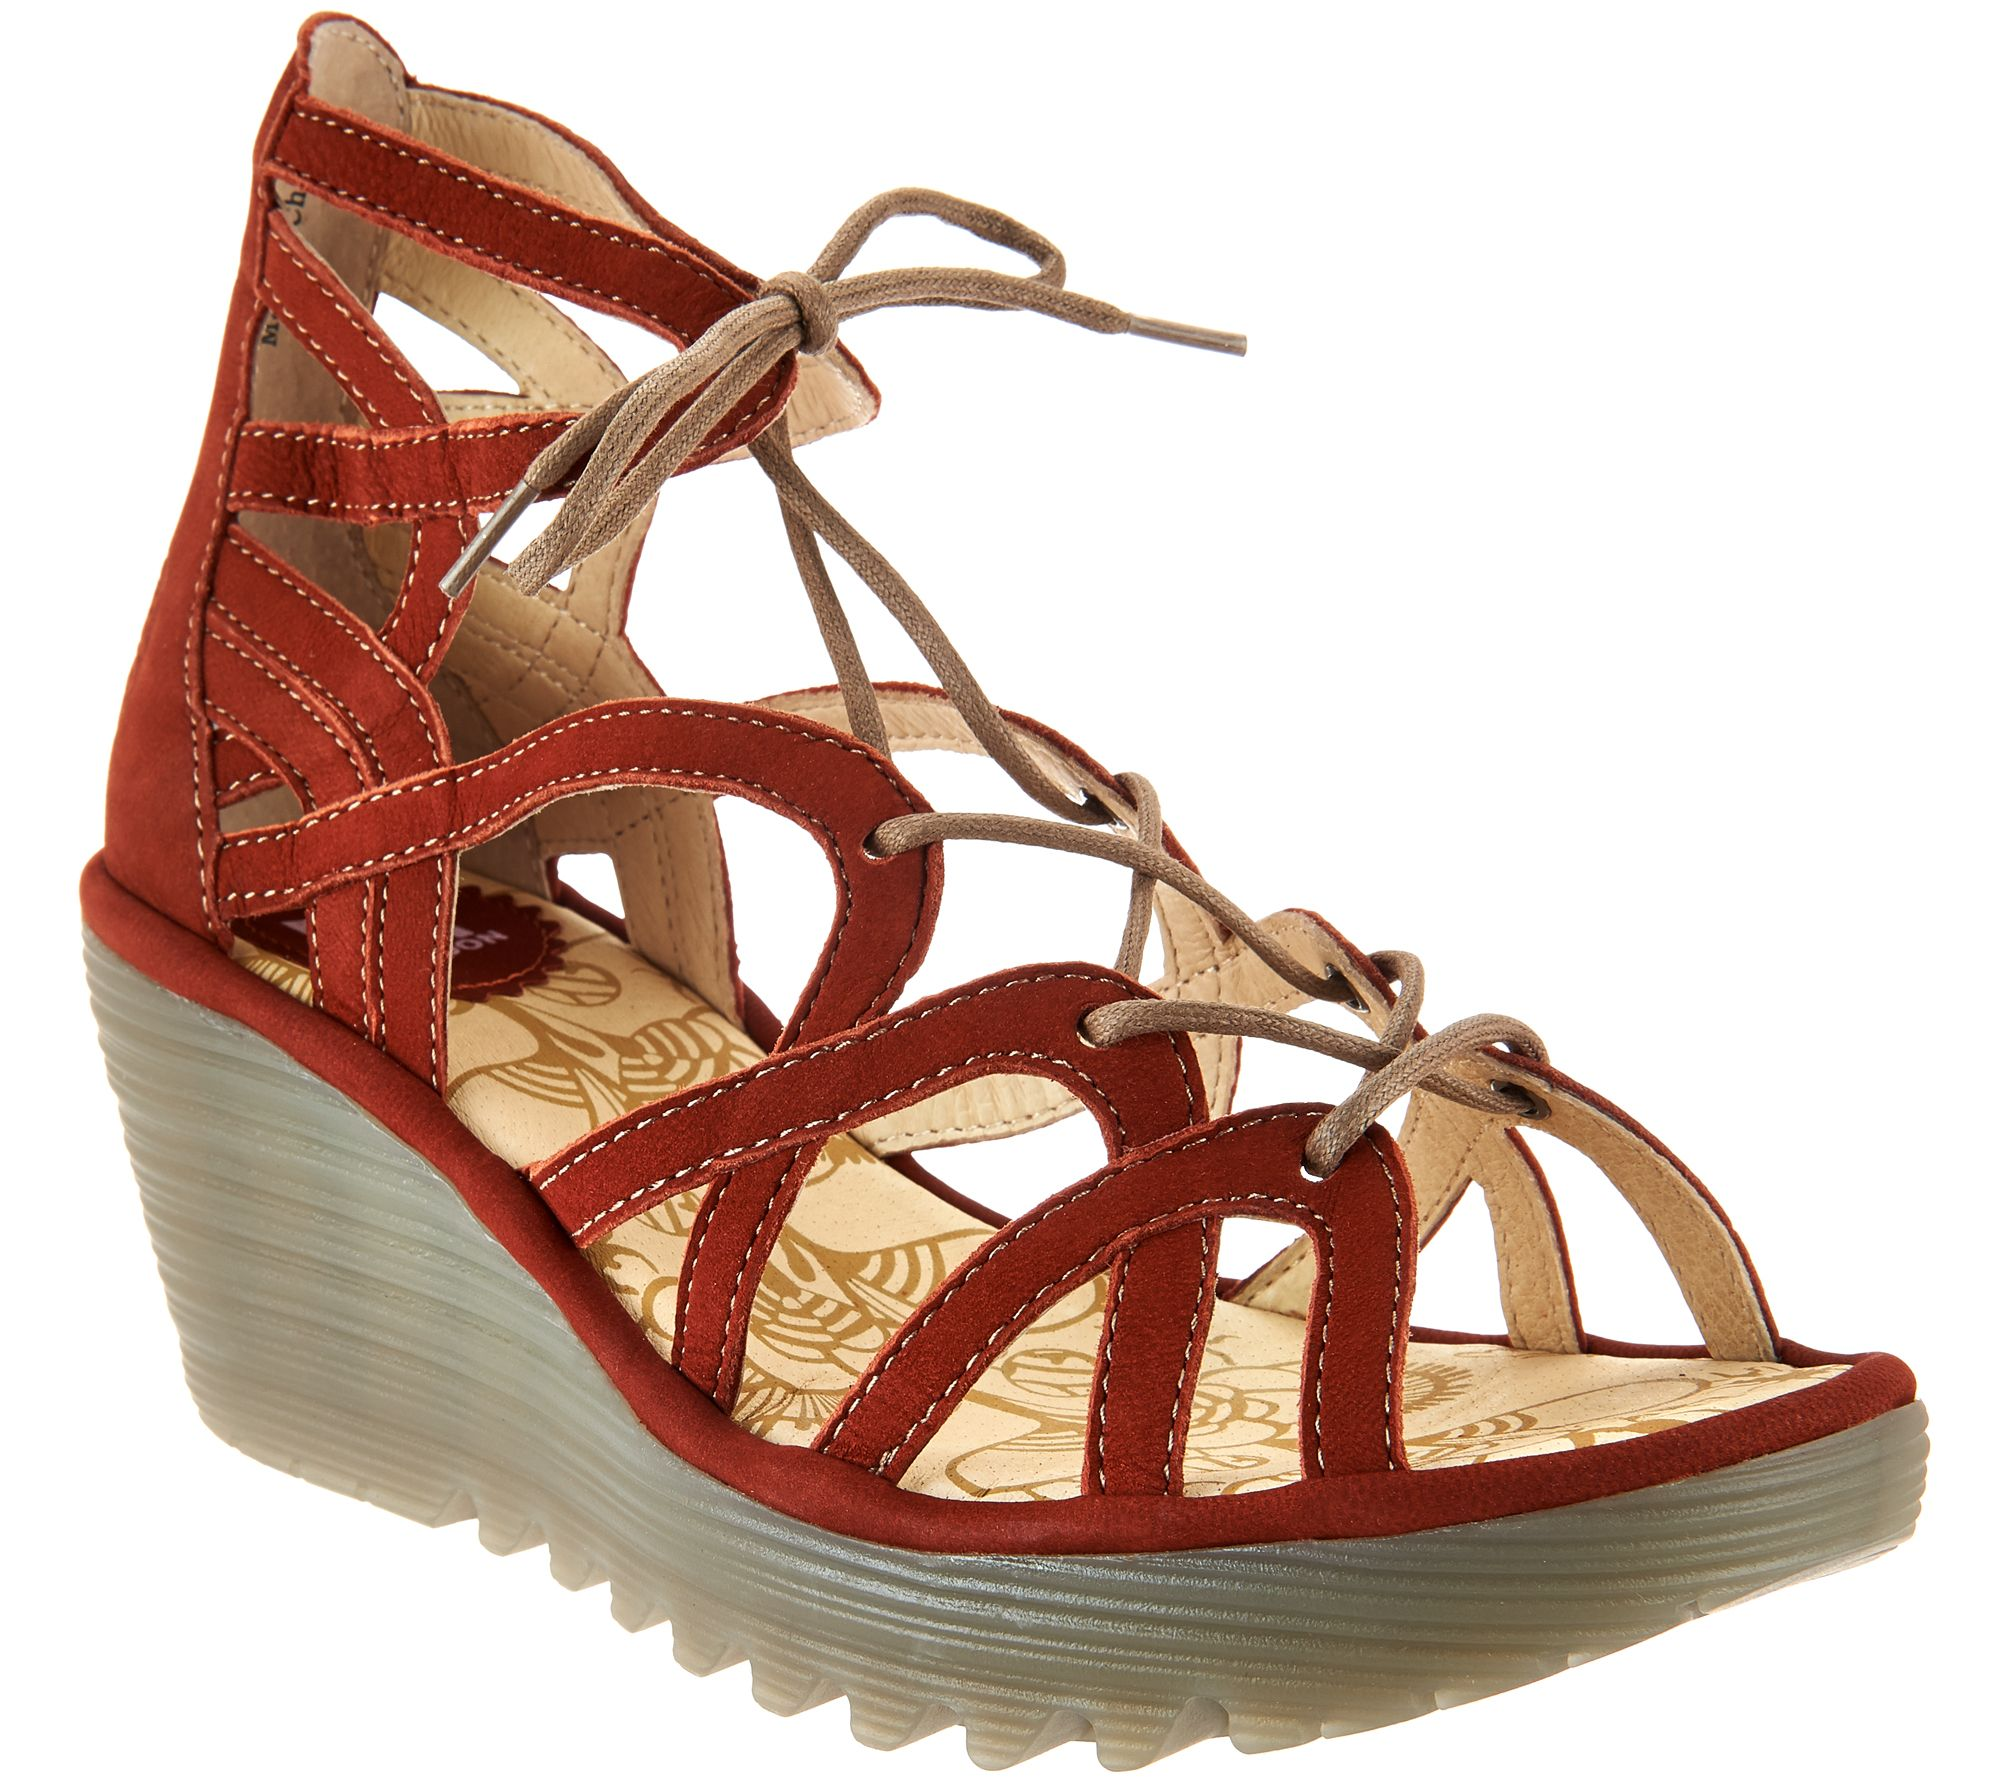 e714ff3a0b3 FLY London Leather Lace-up Wedge Sandals - Yuke - Page 1 — QVC.com